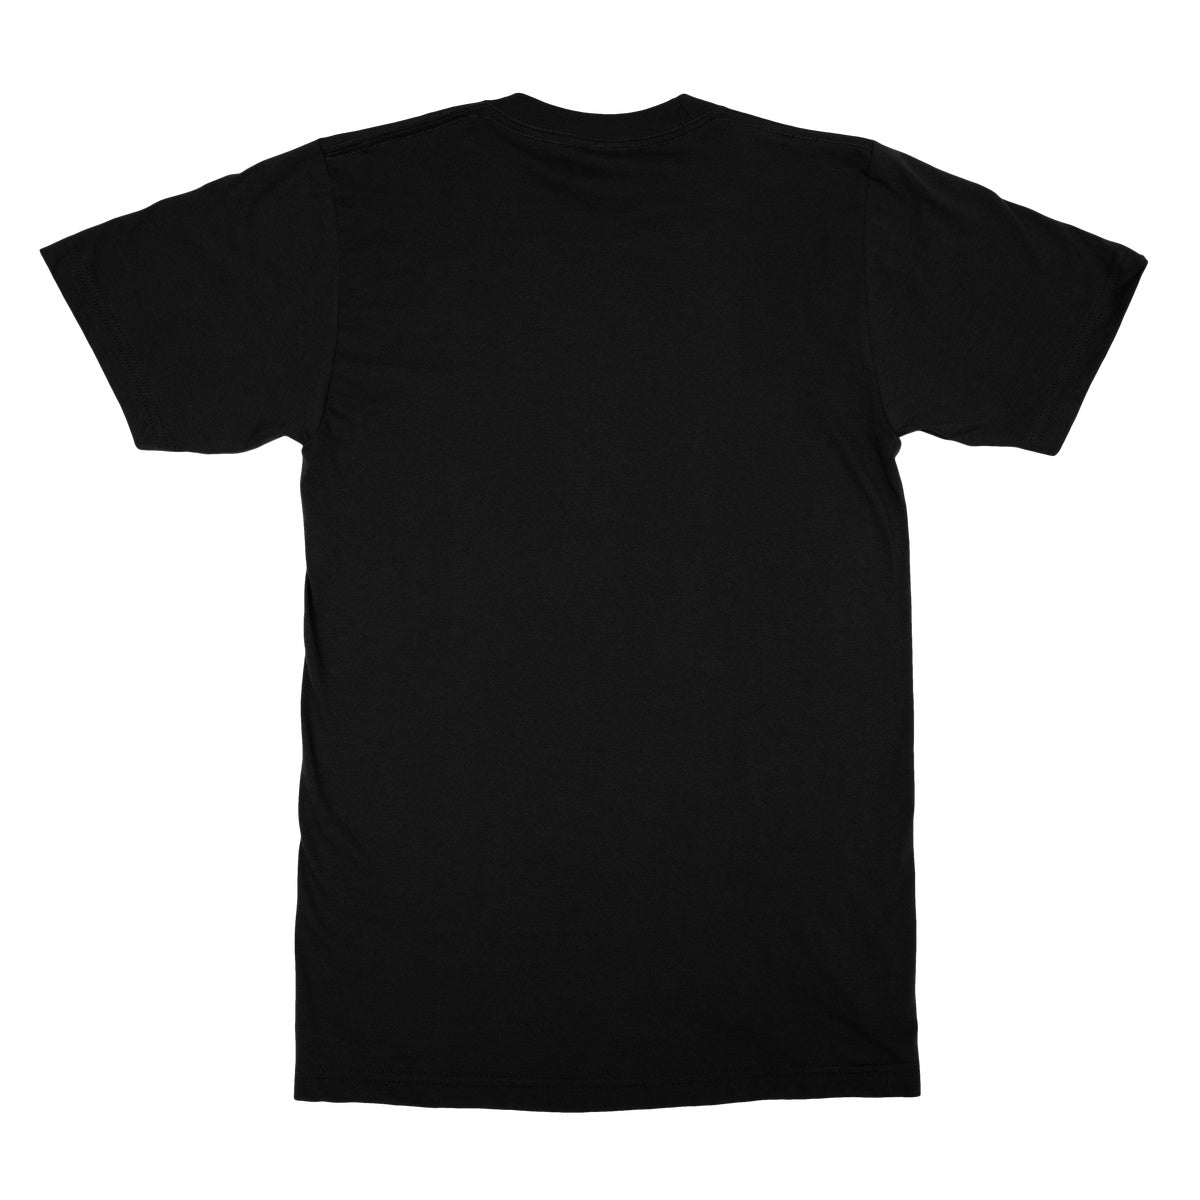 Simon Hill Keep It Locked Softstyle T-Shirt